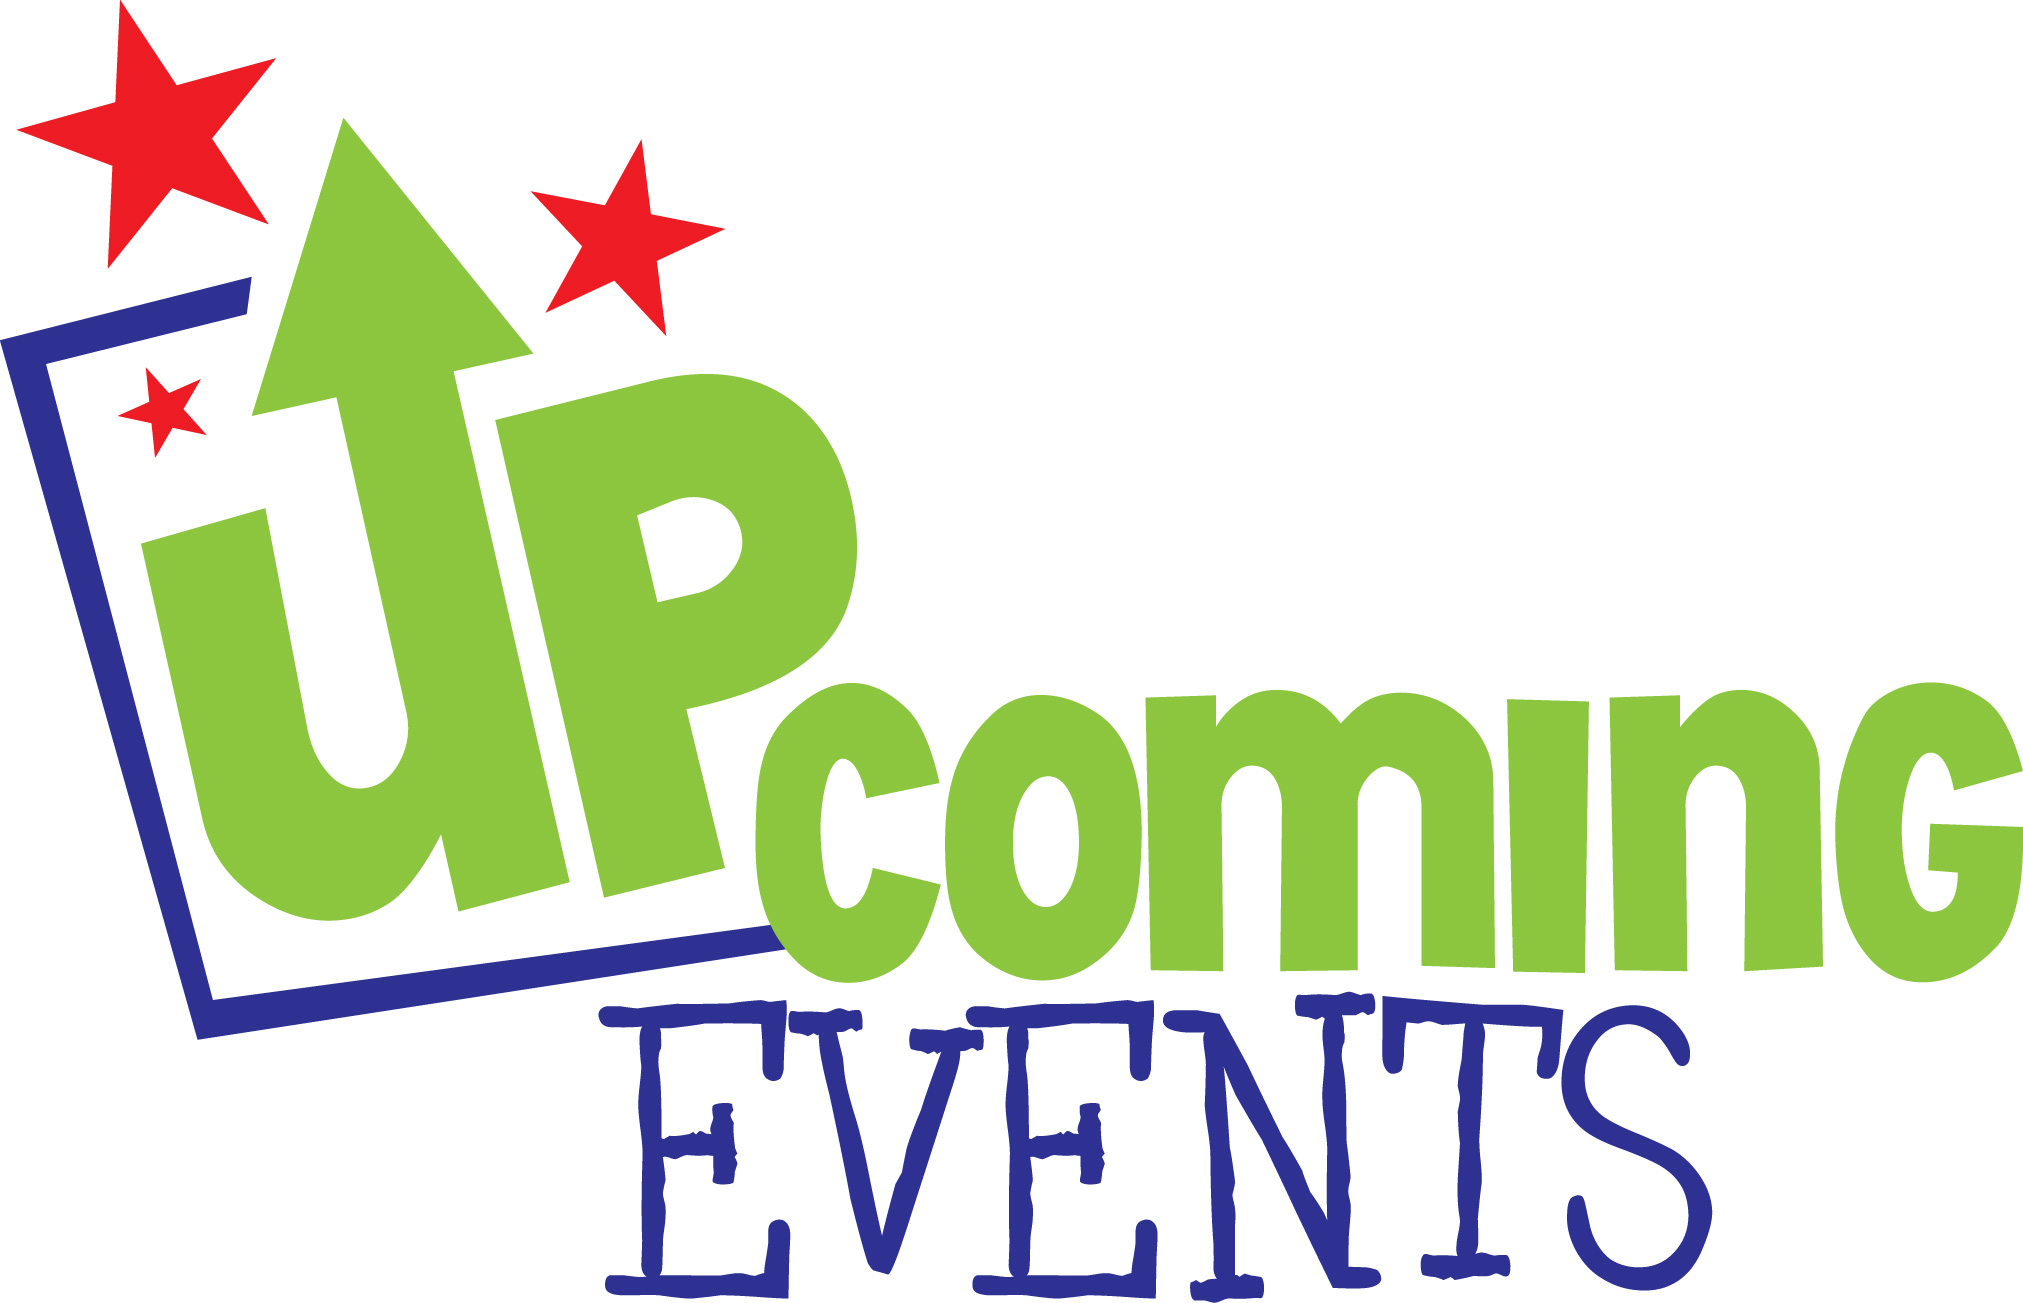 up coming events image